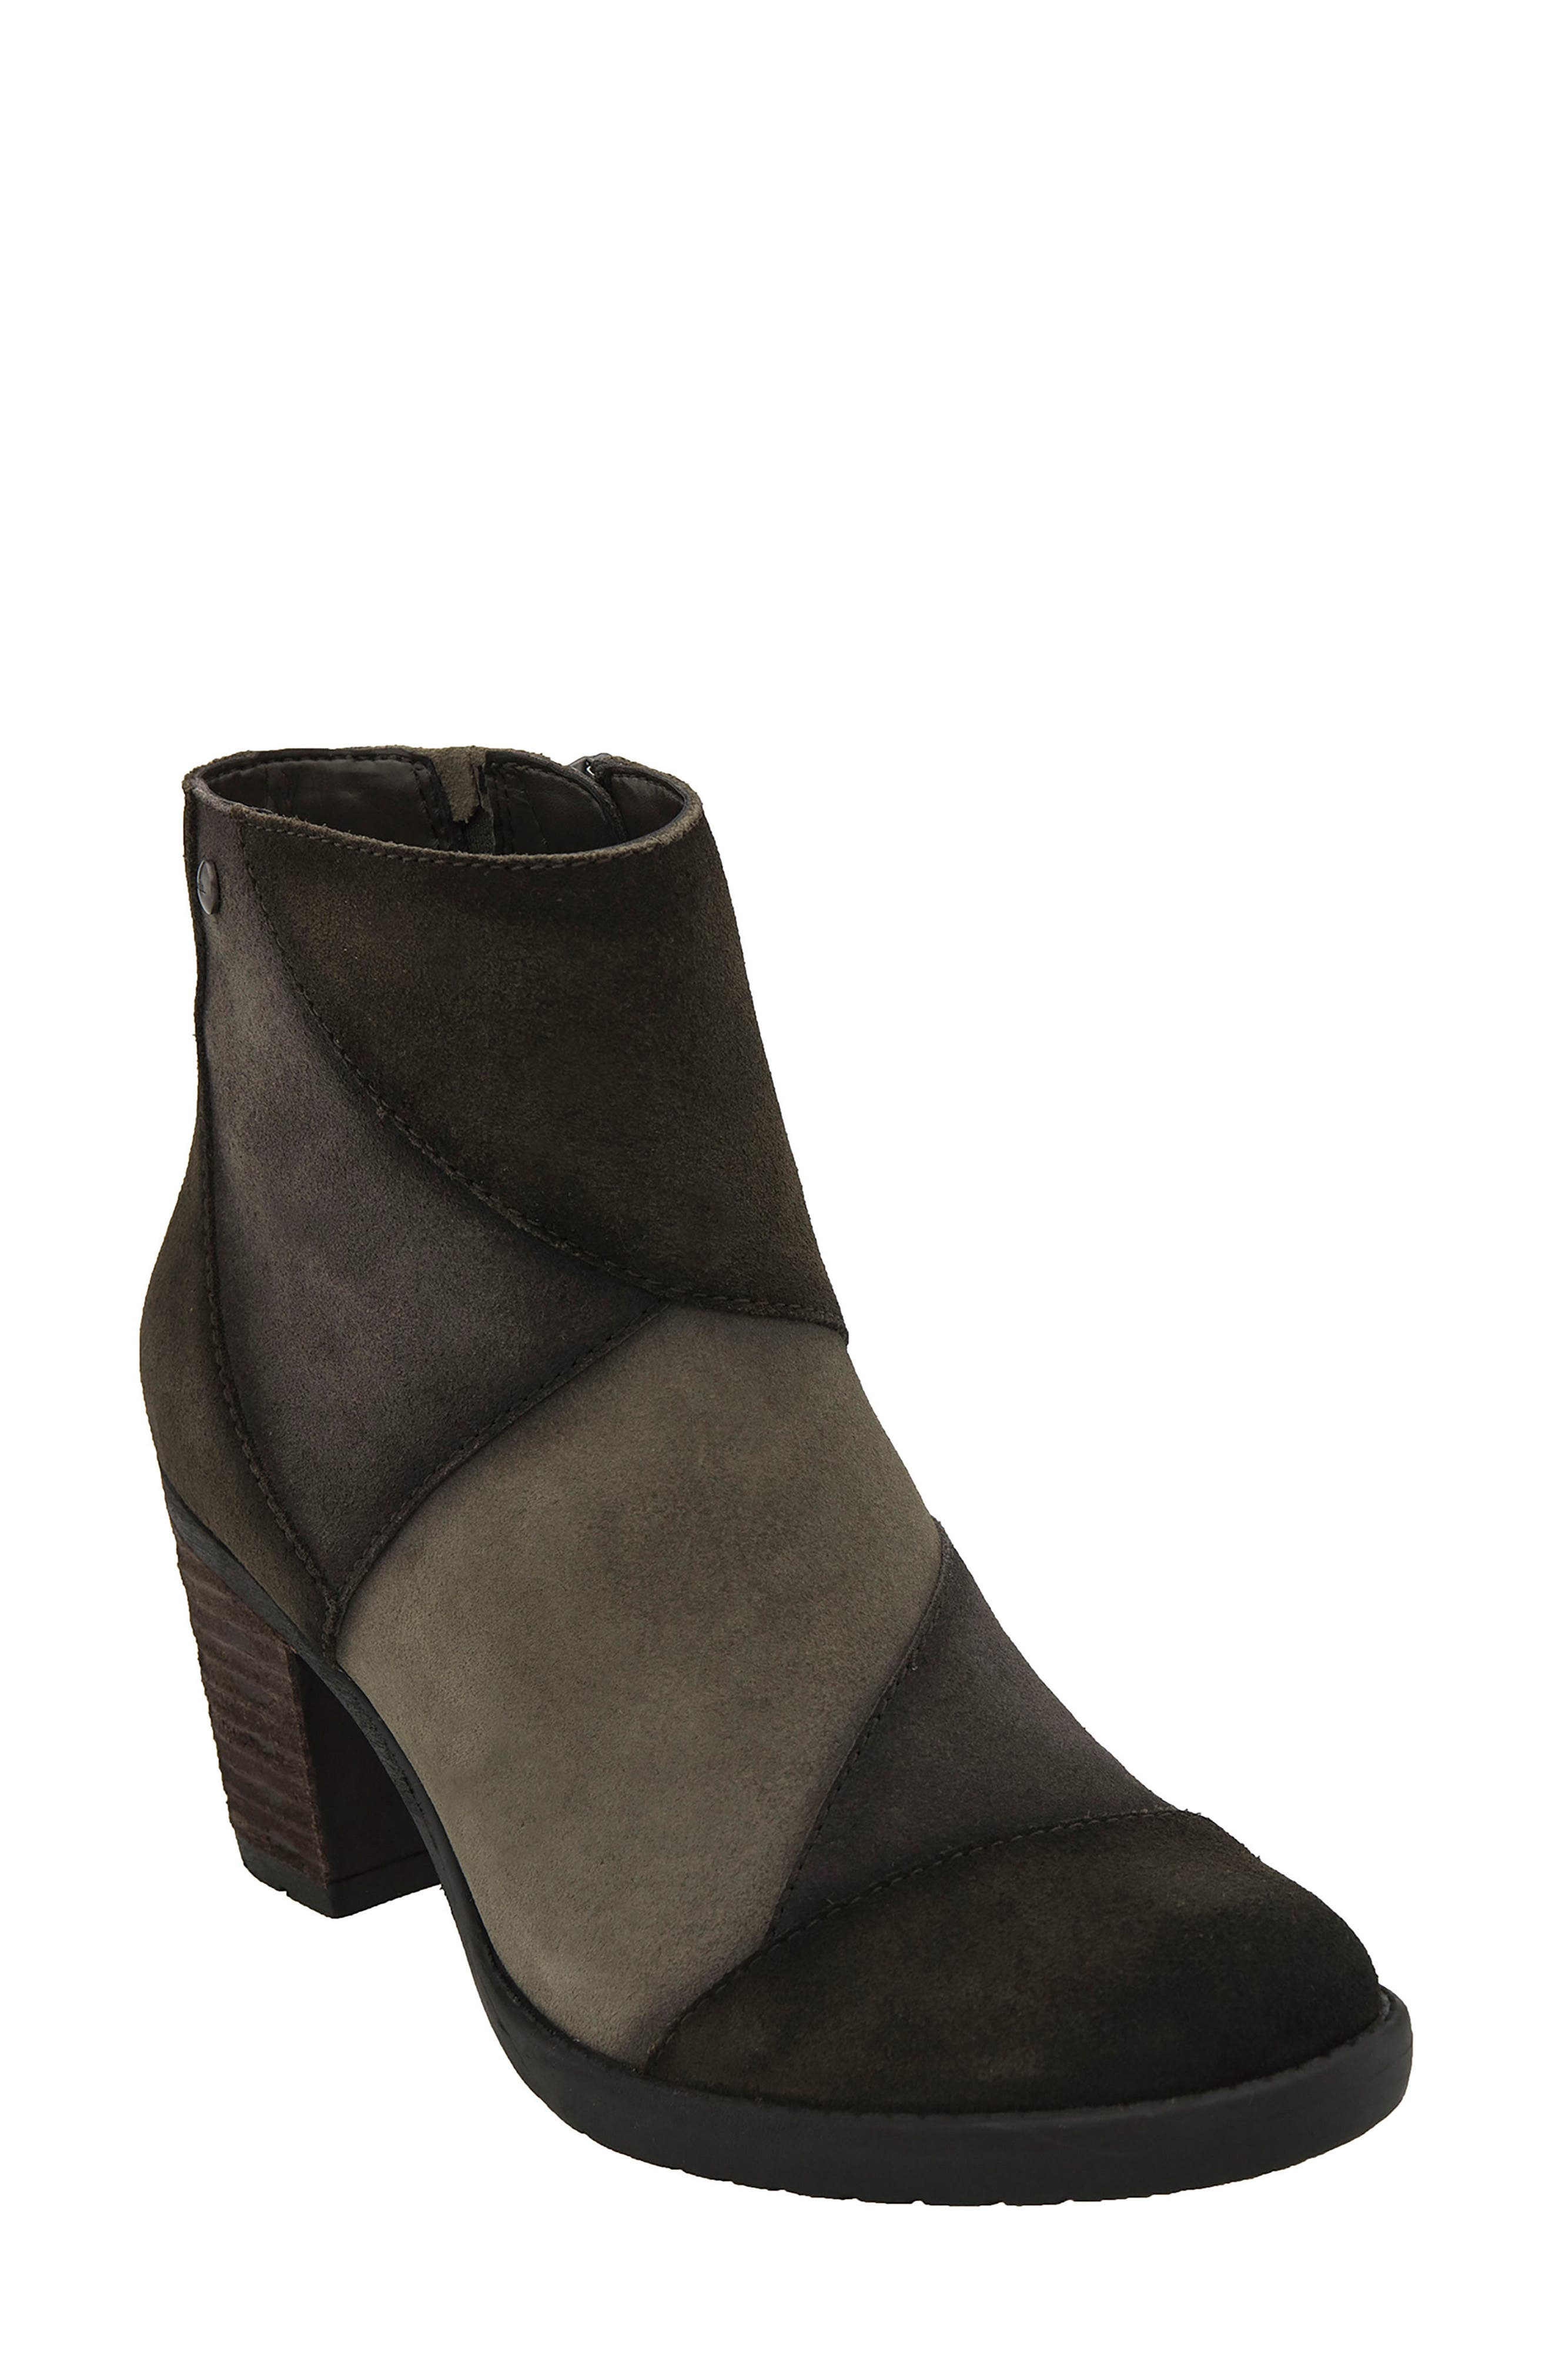 Malta Water Resistant Bootie,                             Main thumbnail 1, color,                             Olive Suede